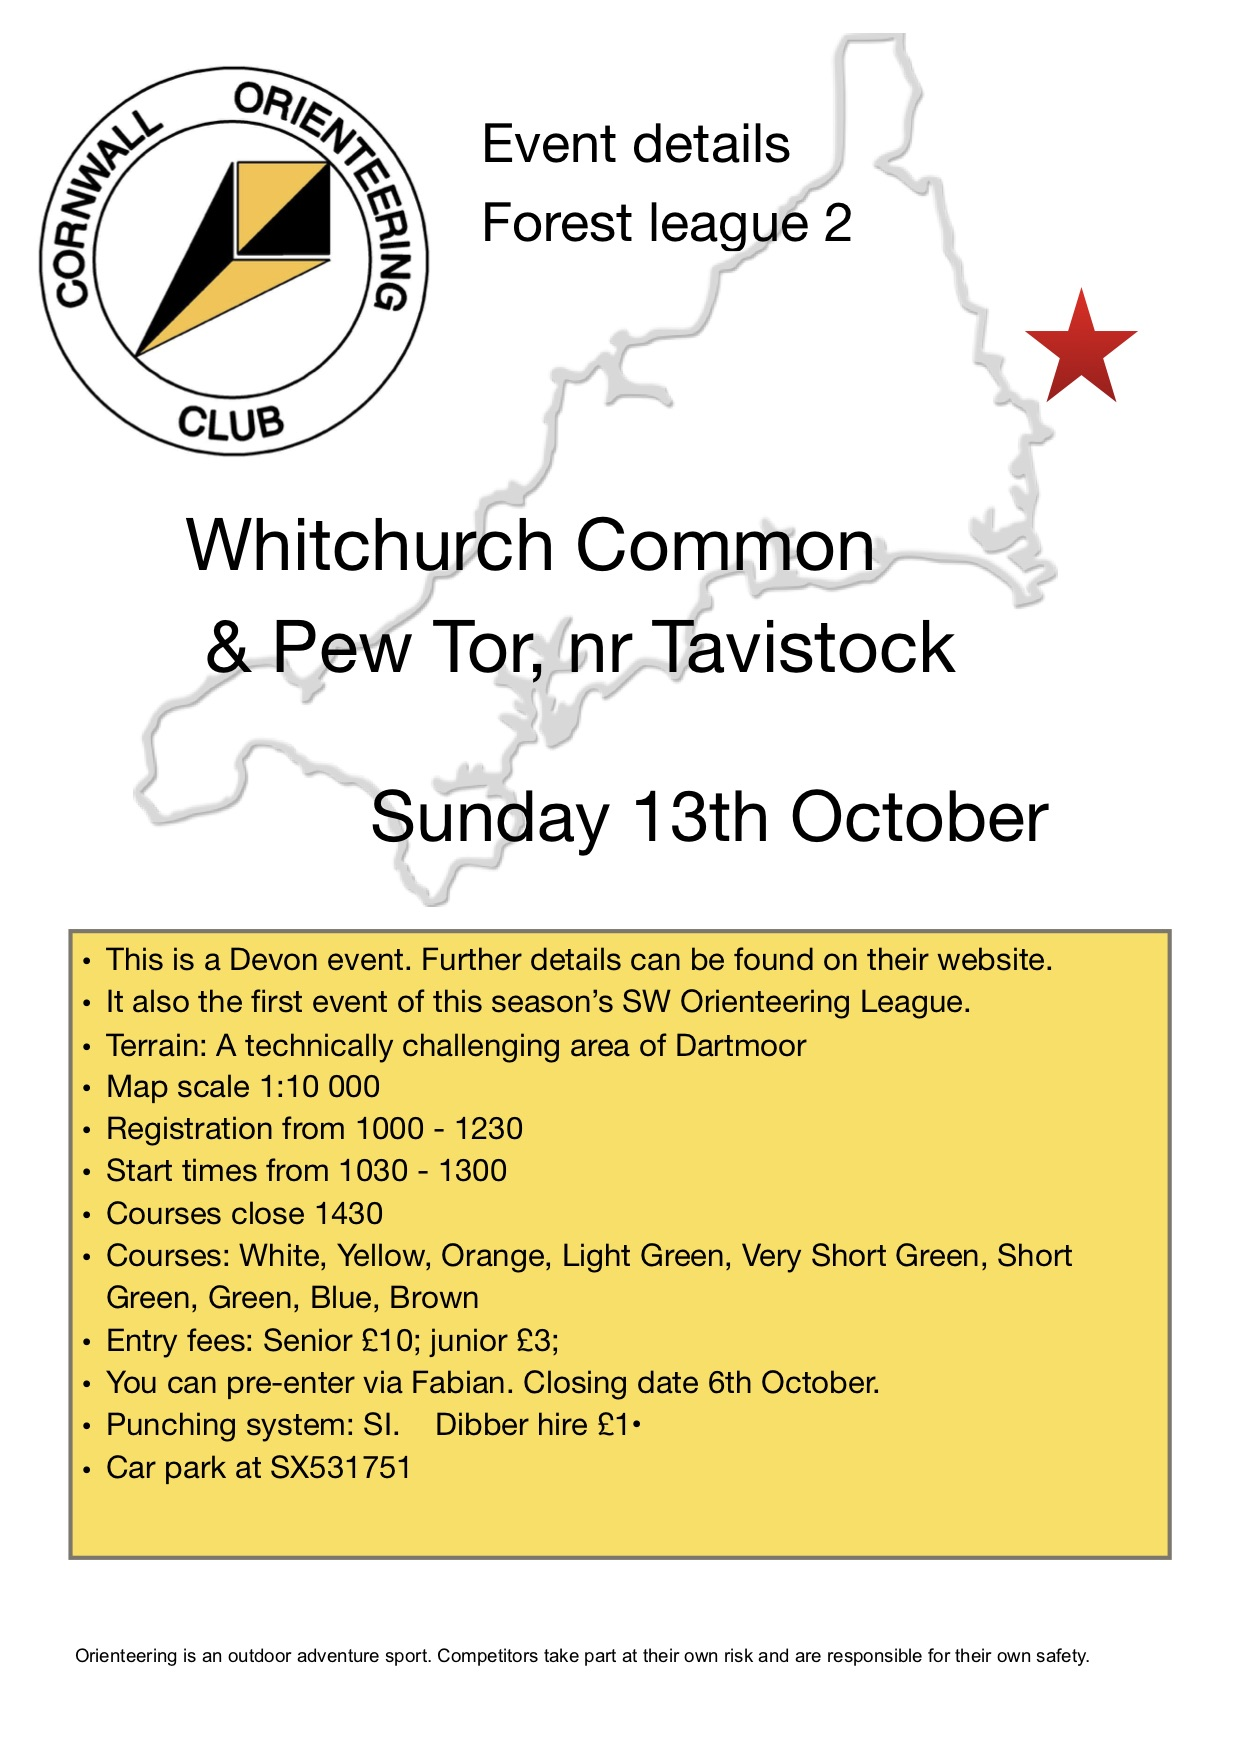 Flyer for Whitchurch event